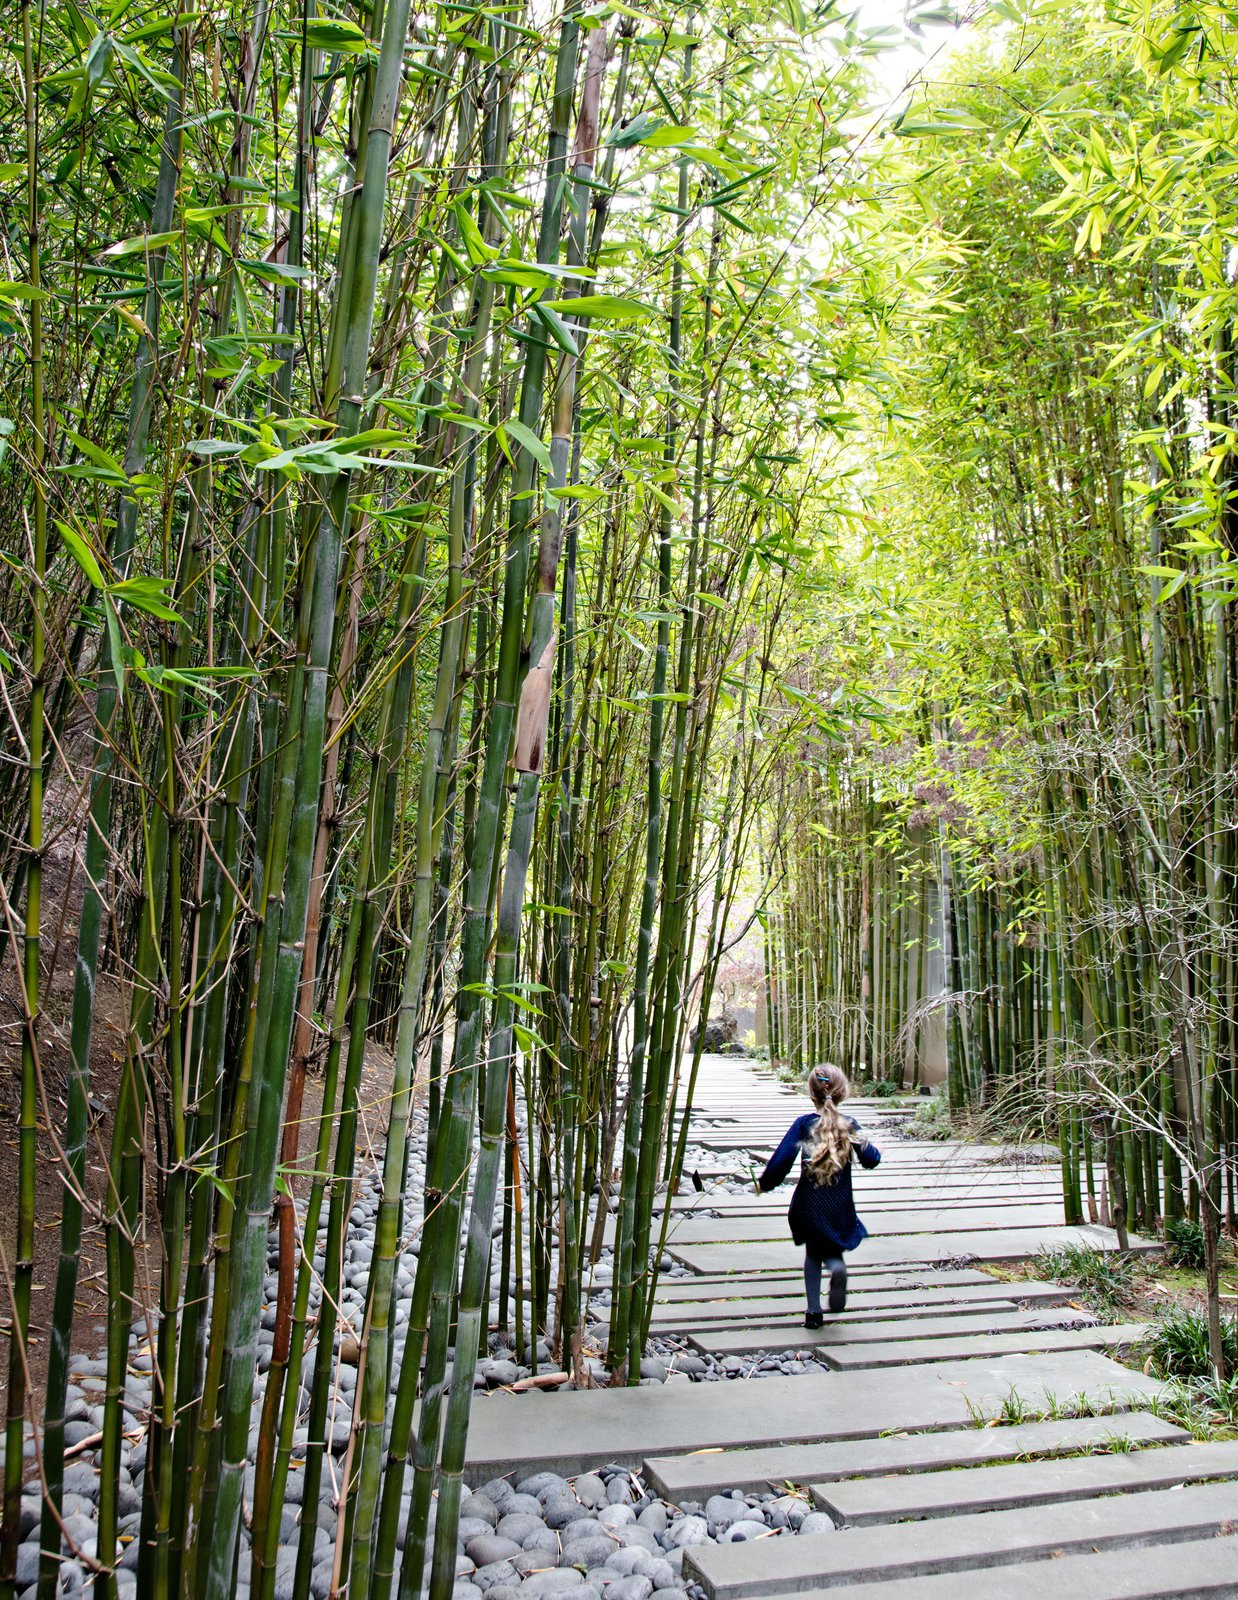 The property is divided into zones, including a shade garden with a meandering path of staggered concrete pavers flanked by bamboo. As this area is sloped, the designers created a swale effect with permeable river rocks on one side. This Endless Playscape Is Complete with a Bamboo Forest and Trampoline - Photo 3 of 11